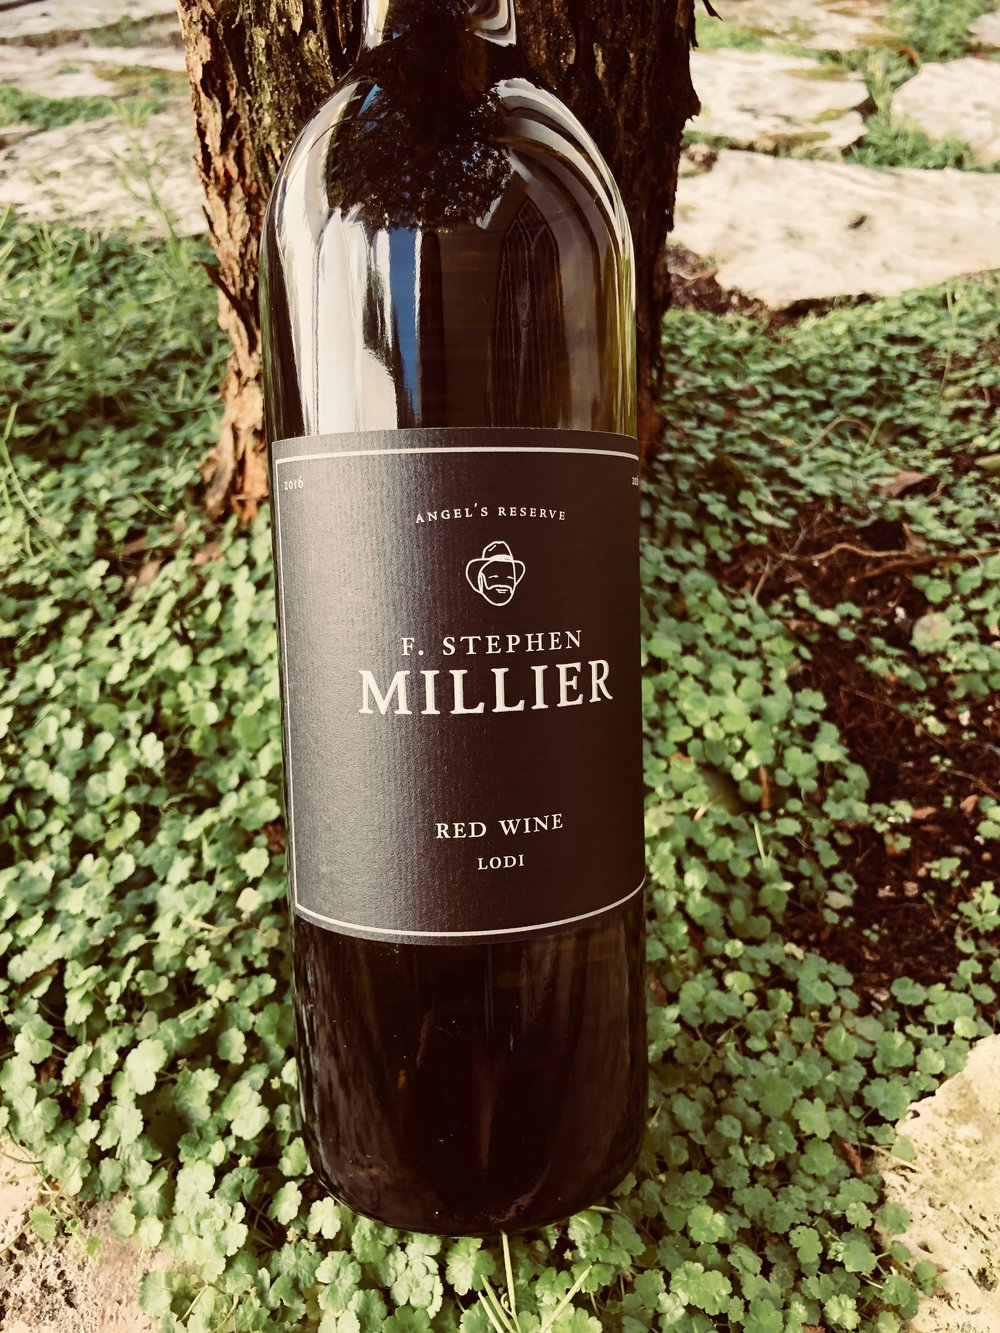 - F. Stephen Millier Angel's Reserve Red Blend Lodi 2016 has a high alcohol nose so let it breathe! With this blend of Shiraz, Merlot, Zinfandel and Petite Sirah we got notes of dark cherry and blackberry. It paired well with our homemade pasta.List $17 Angels Price $10